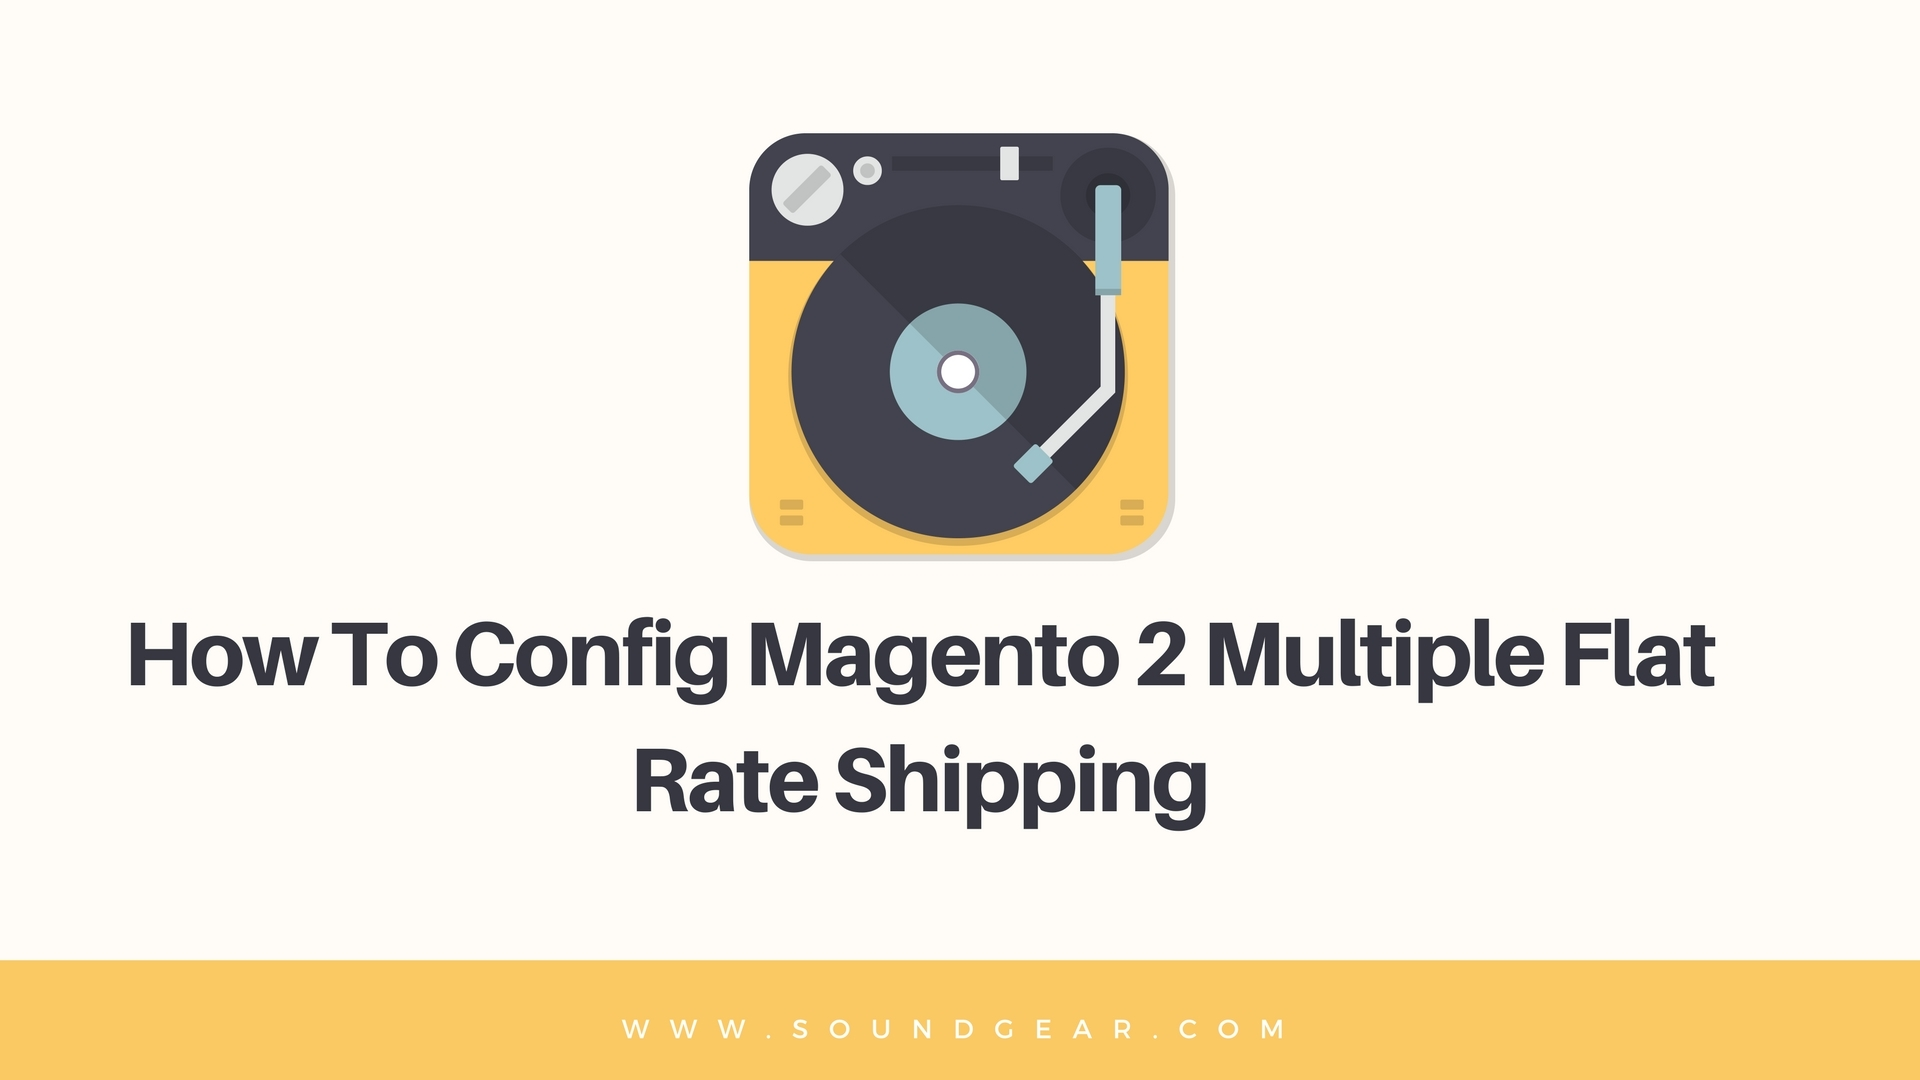 Config Magento 2 Multiple Flat Rate Shipping